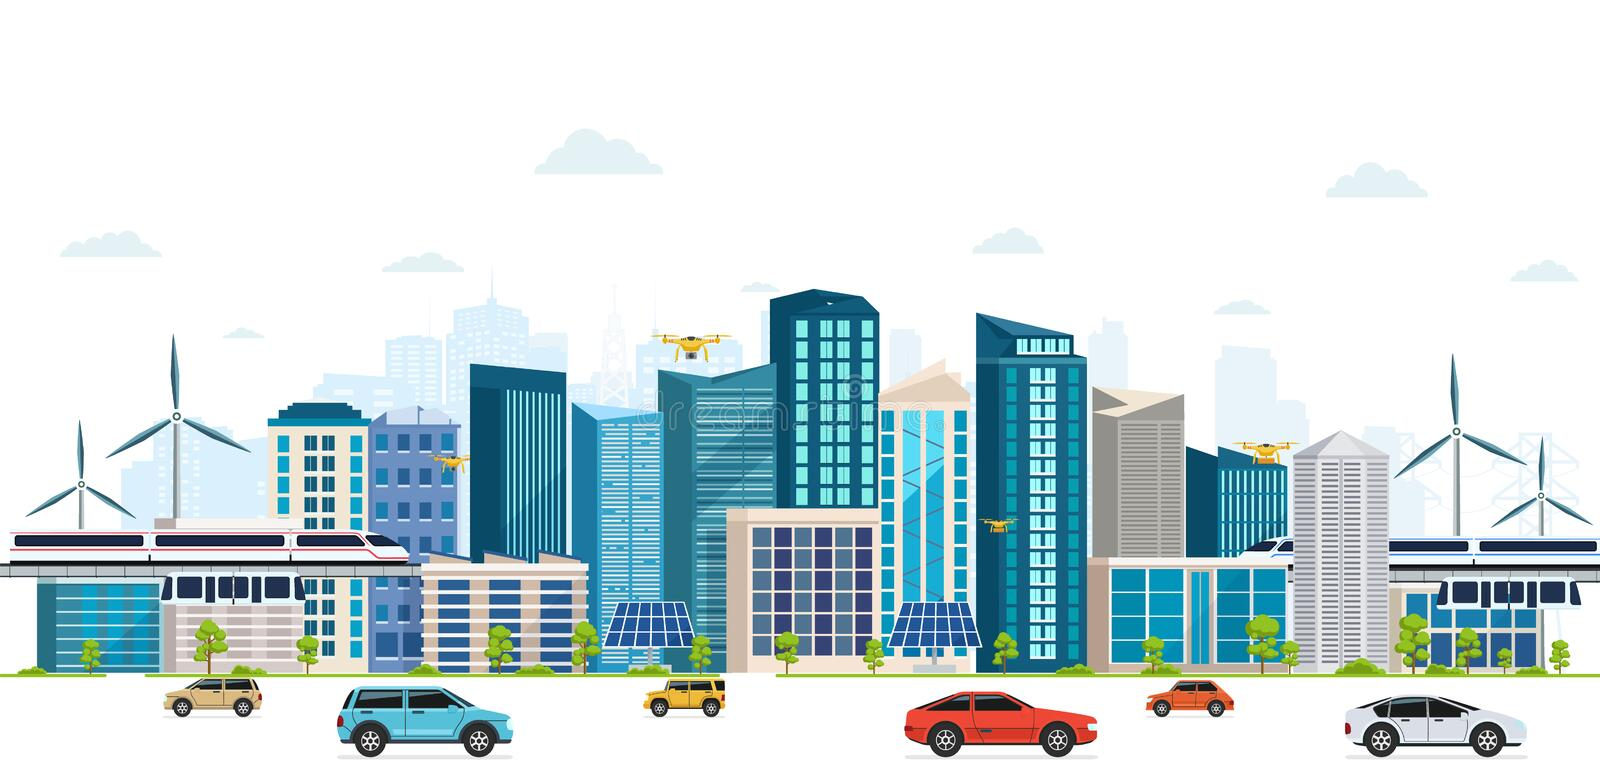 Urban landscape with large modern buildings, skyscrapers, skyway. vector illustration